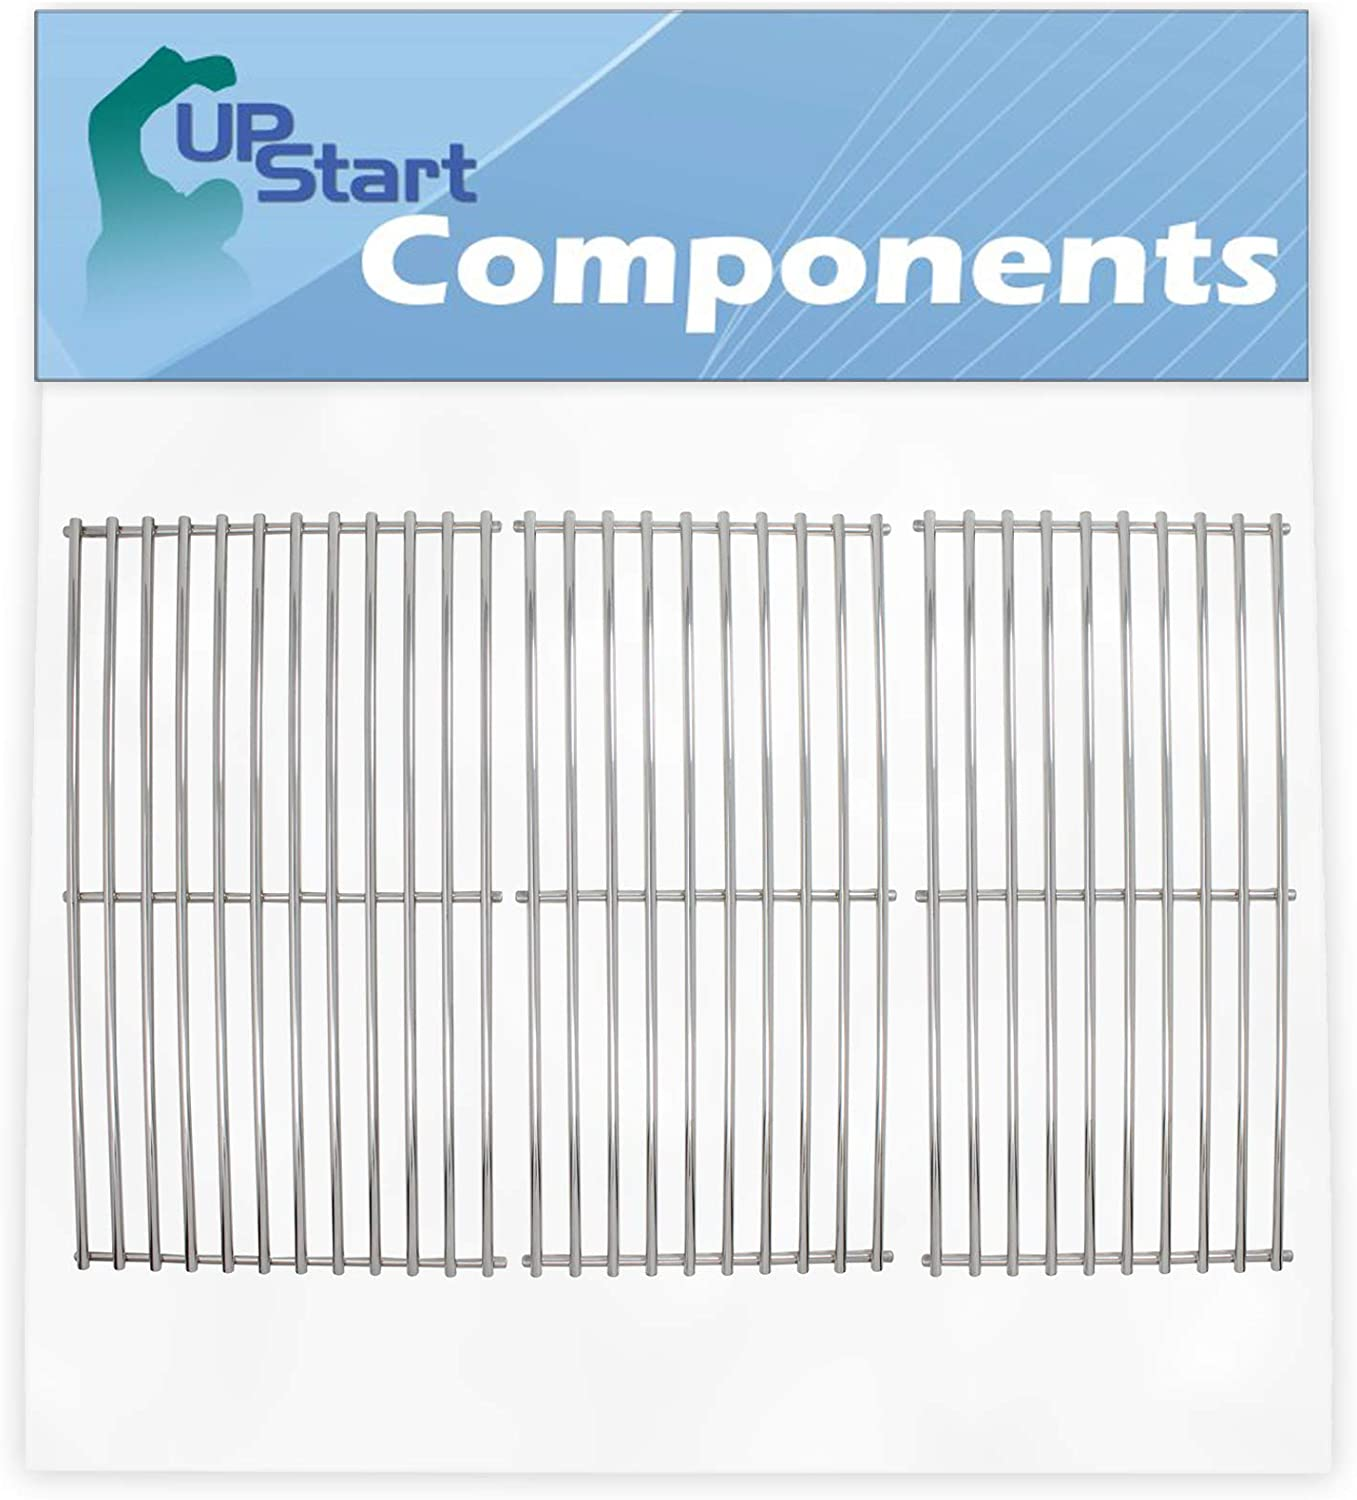 UpStart Max 59% OFF Components BBQ Grill Cooking Replacement Parts Grates Rapid rise fo